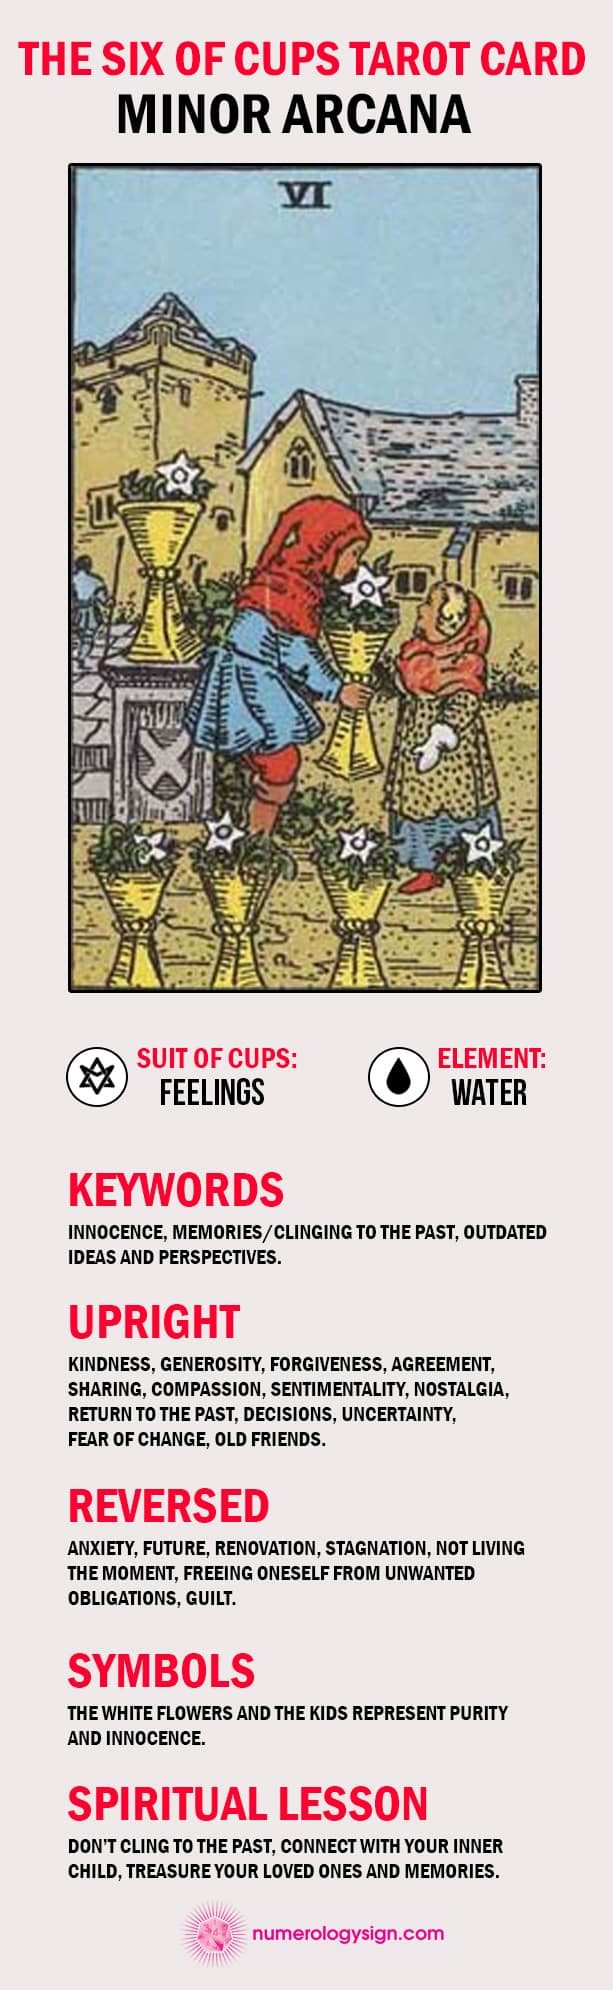 The Six of Cups Tarot Card Meaning Infographic - Minor Arcana